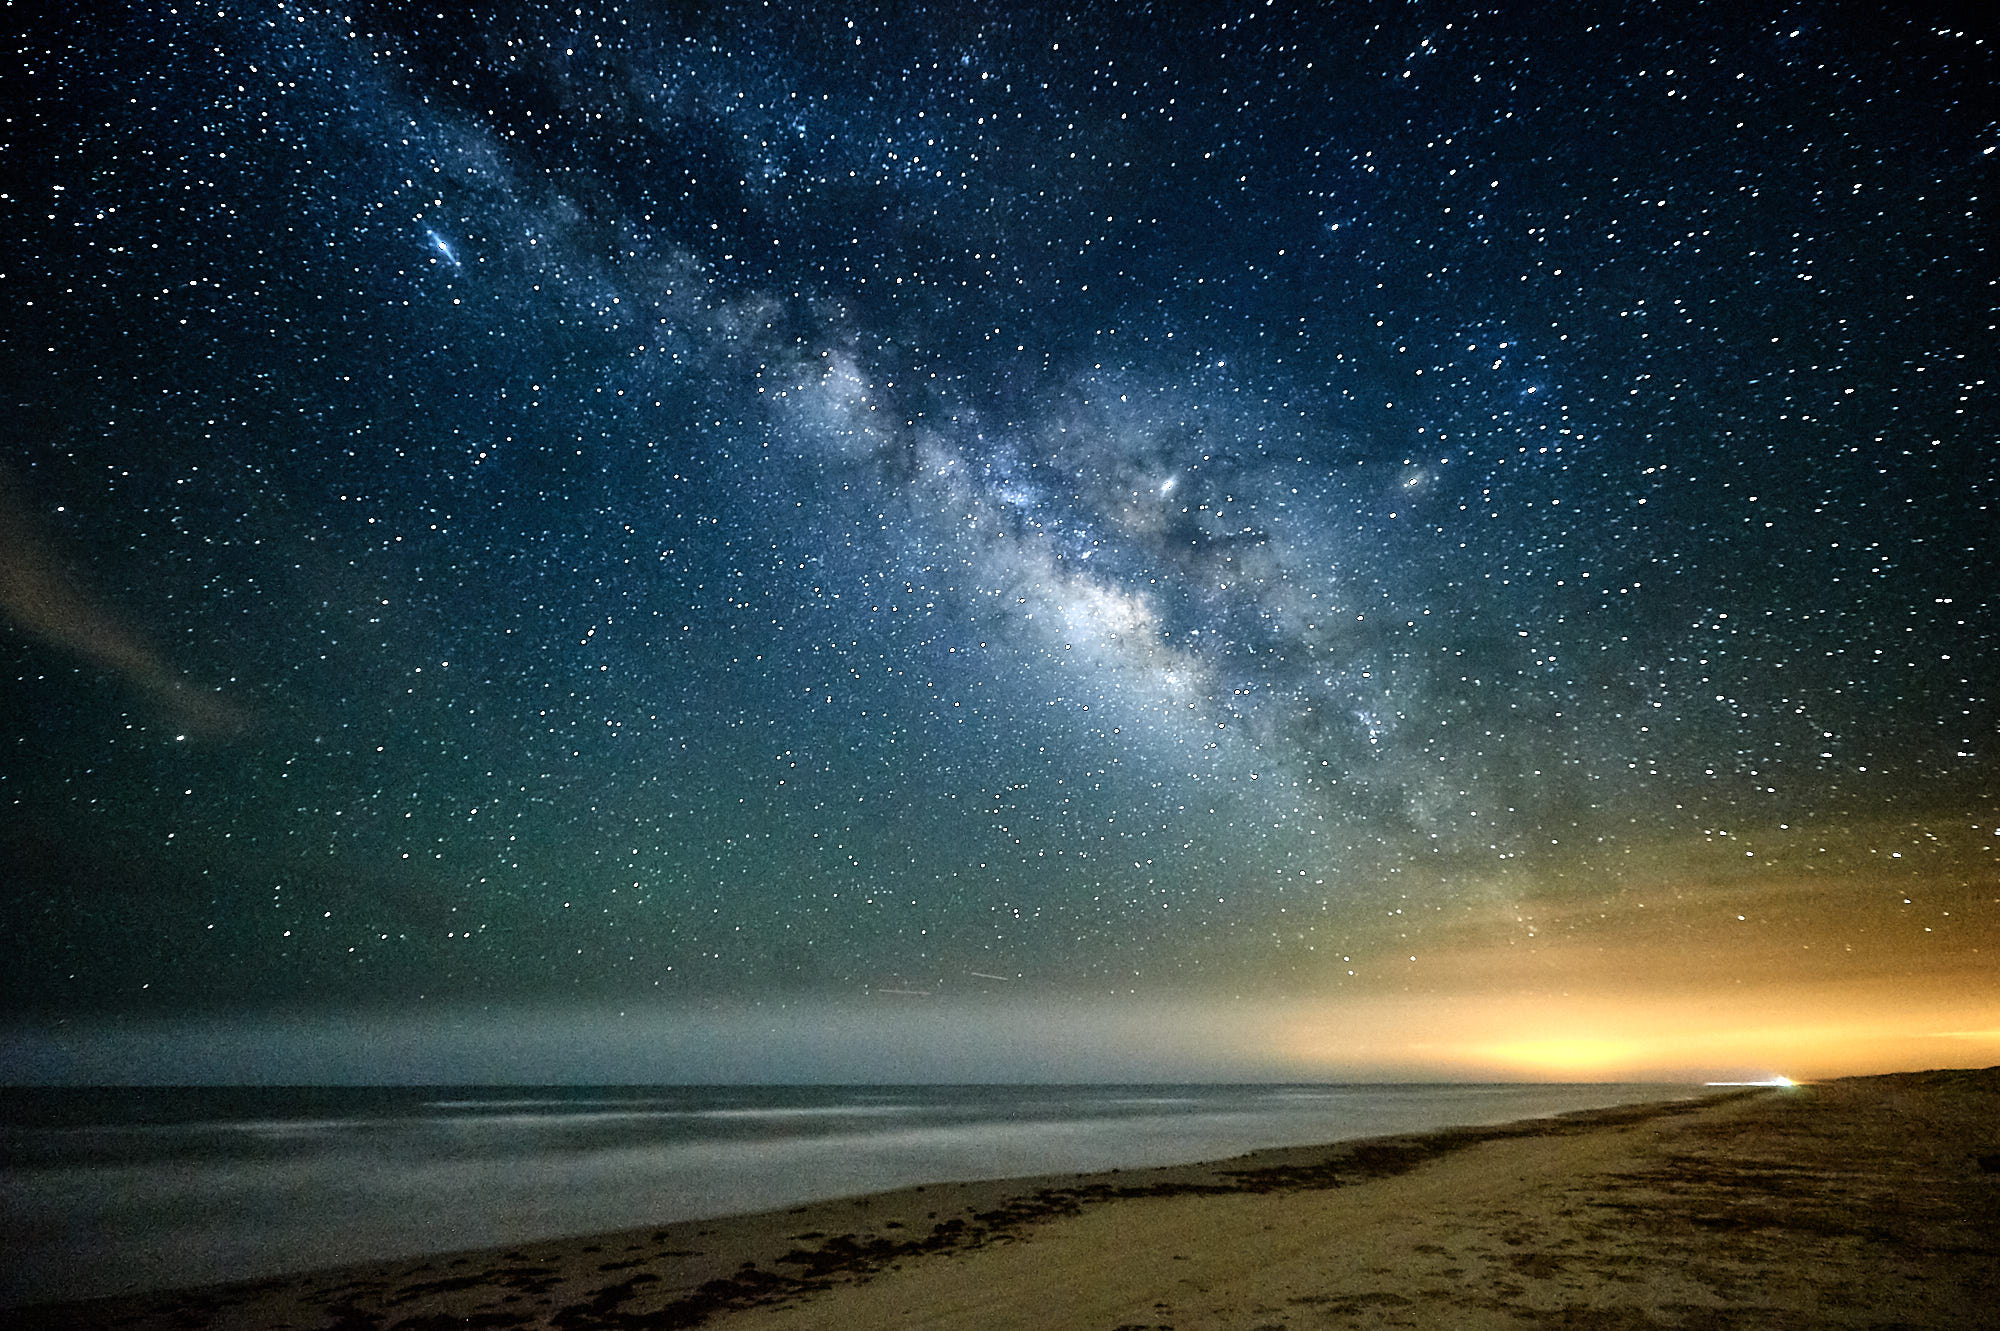 A Milky Way Photo without Clouds